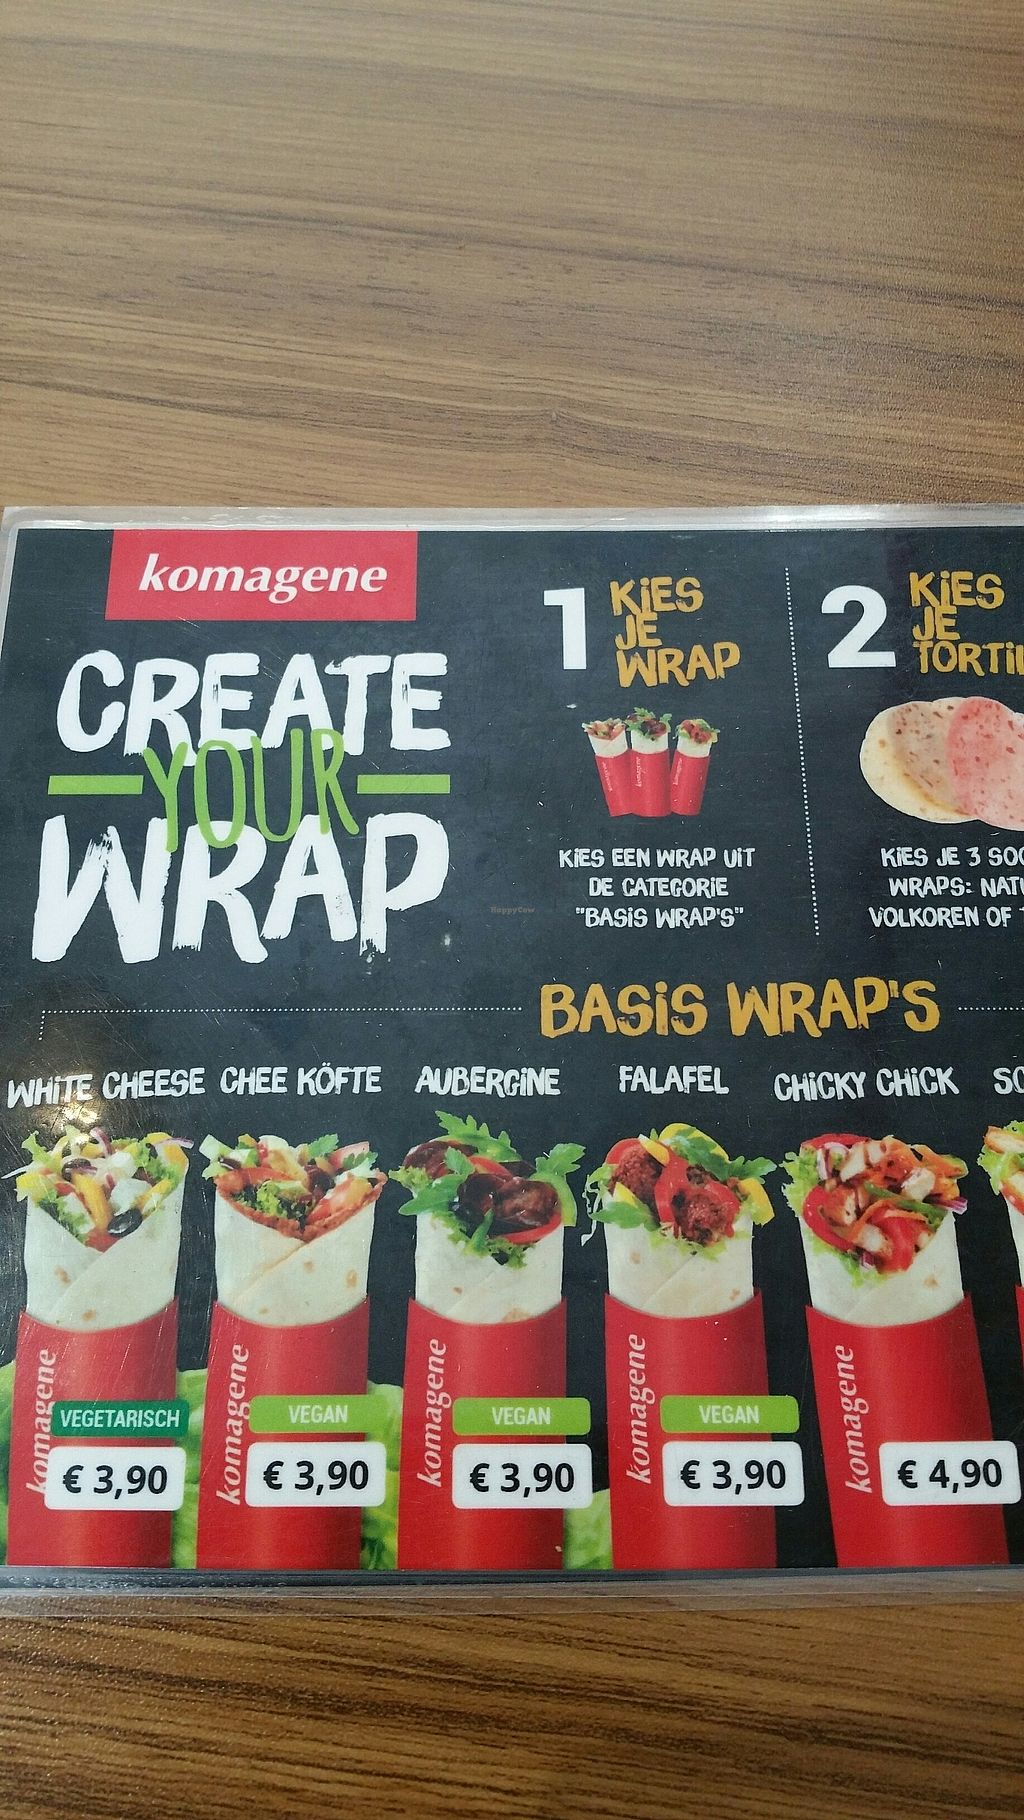 "Photo of Komagene  by <a href=""/members/profile/Cathy2001"">Cathy2001</a> <br/>basic wrap menu <br/> July 29, 2017  - <a href='/contact/abuse/image/96559/286300'>Report</a>"